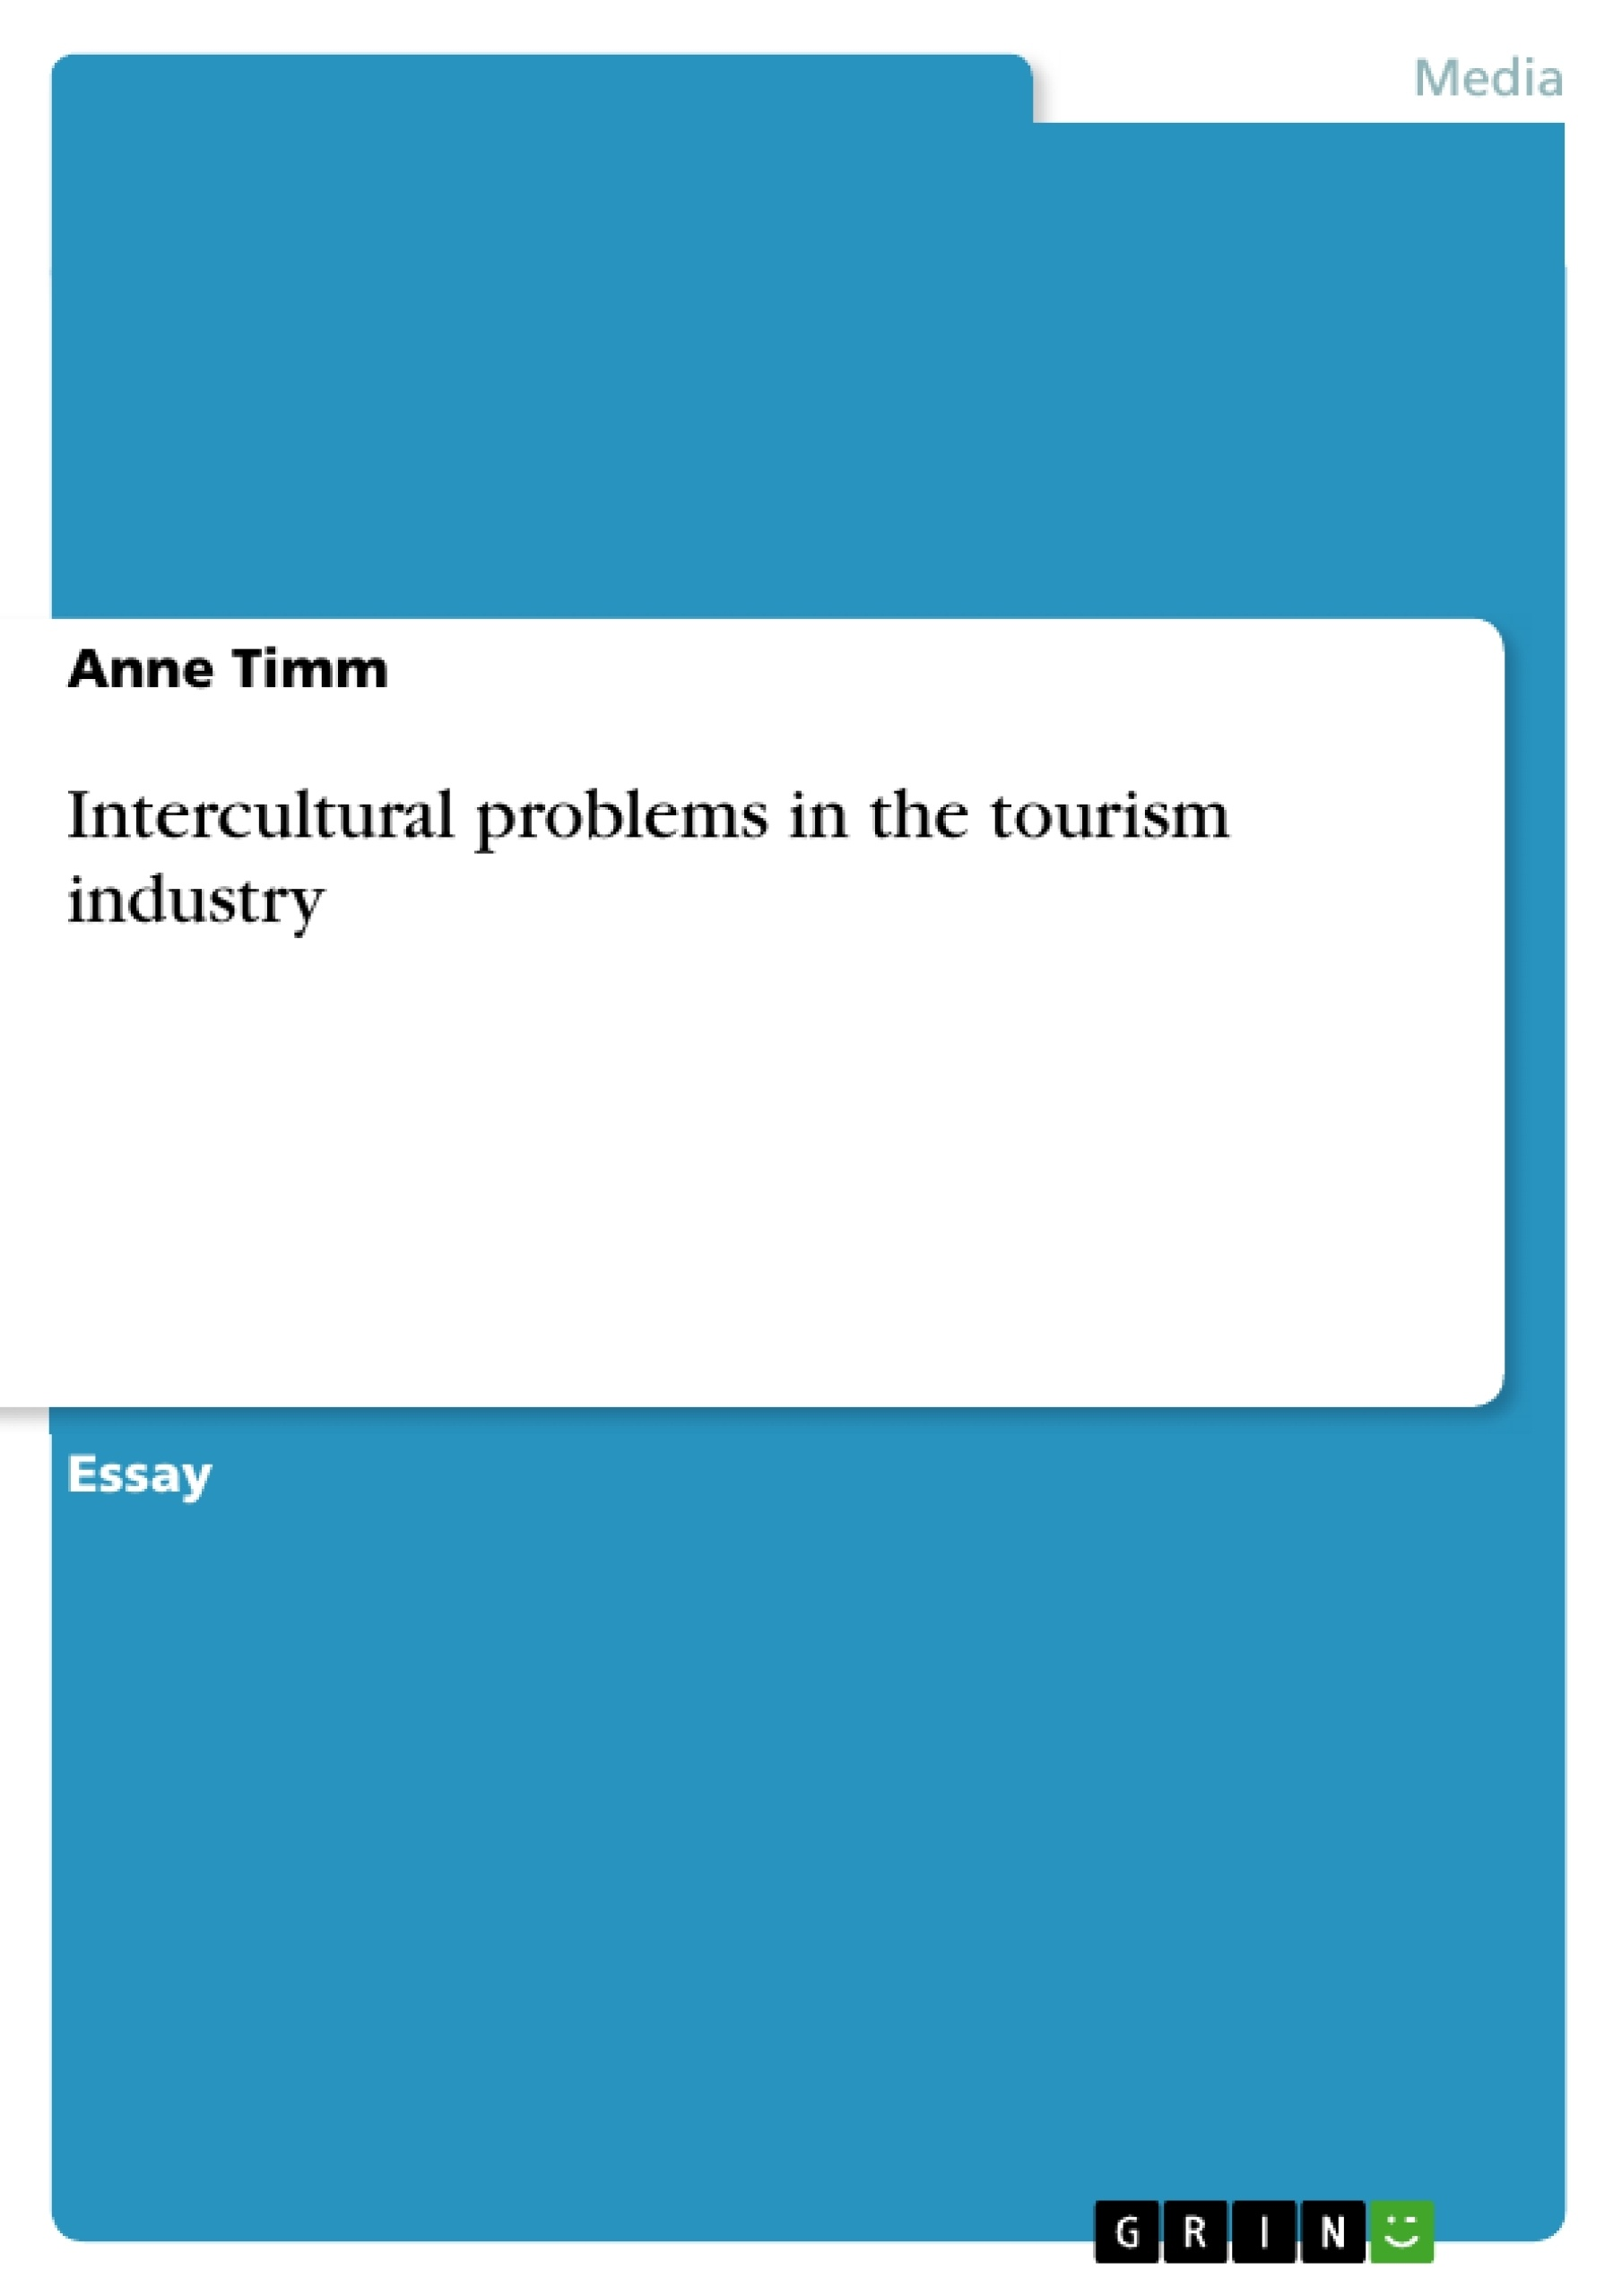 thesis about tourism industry